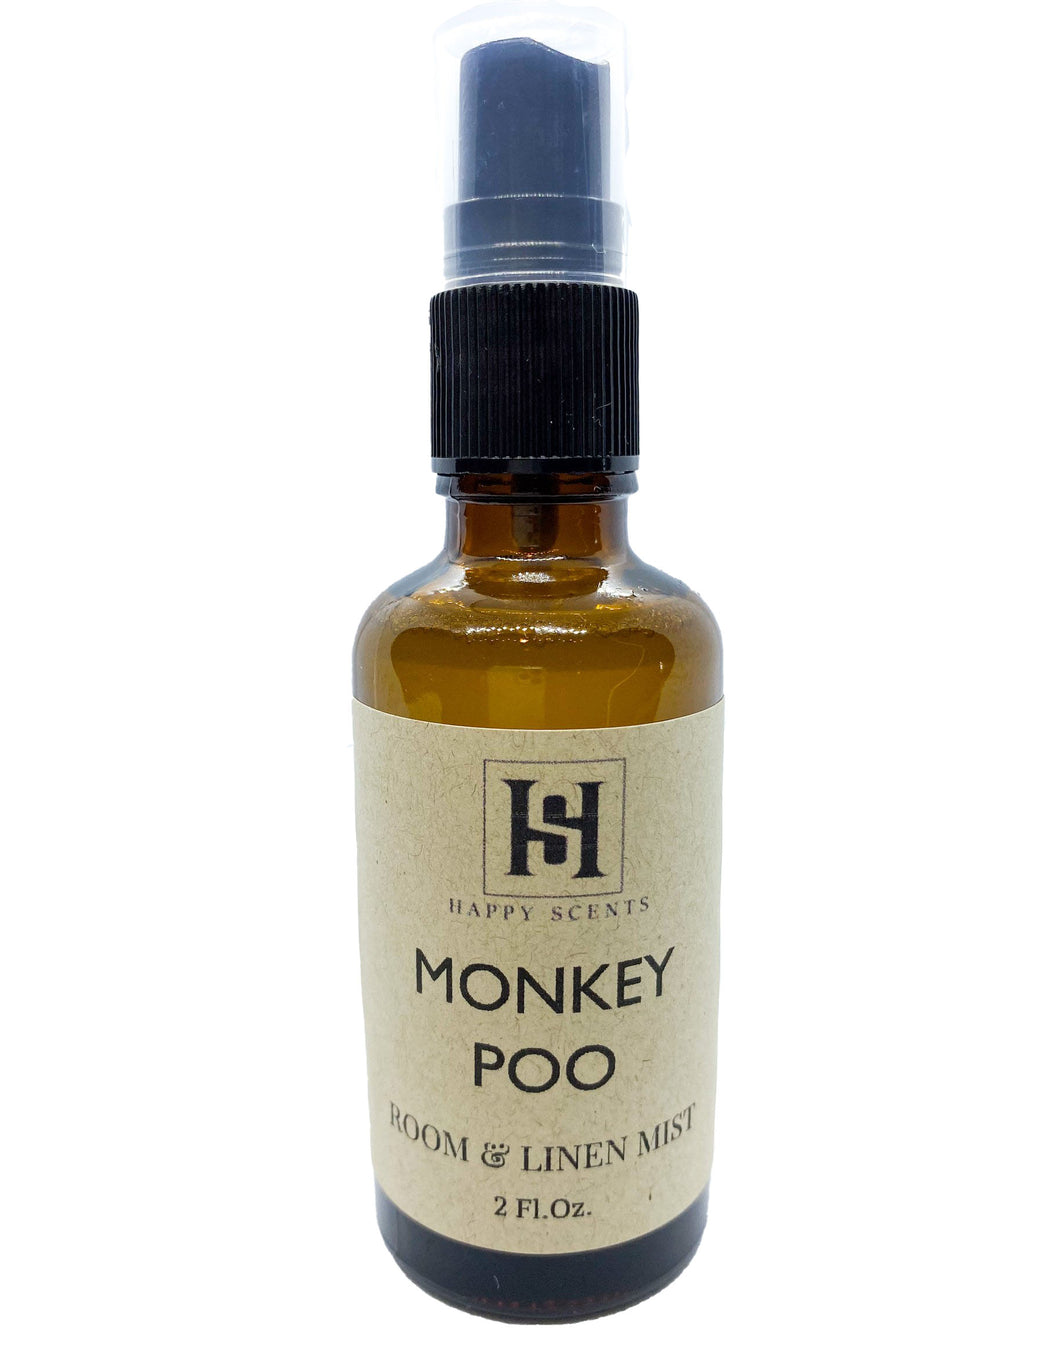 Monkey Poo Room & Linen Mist